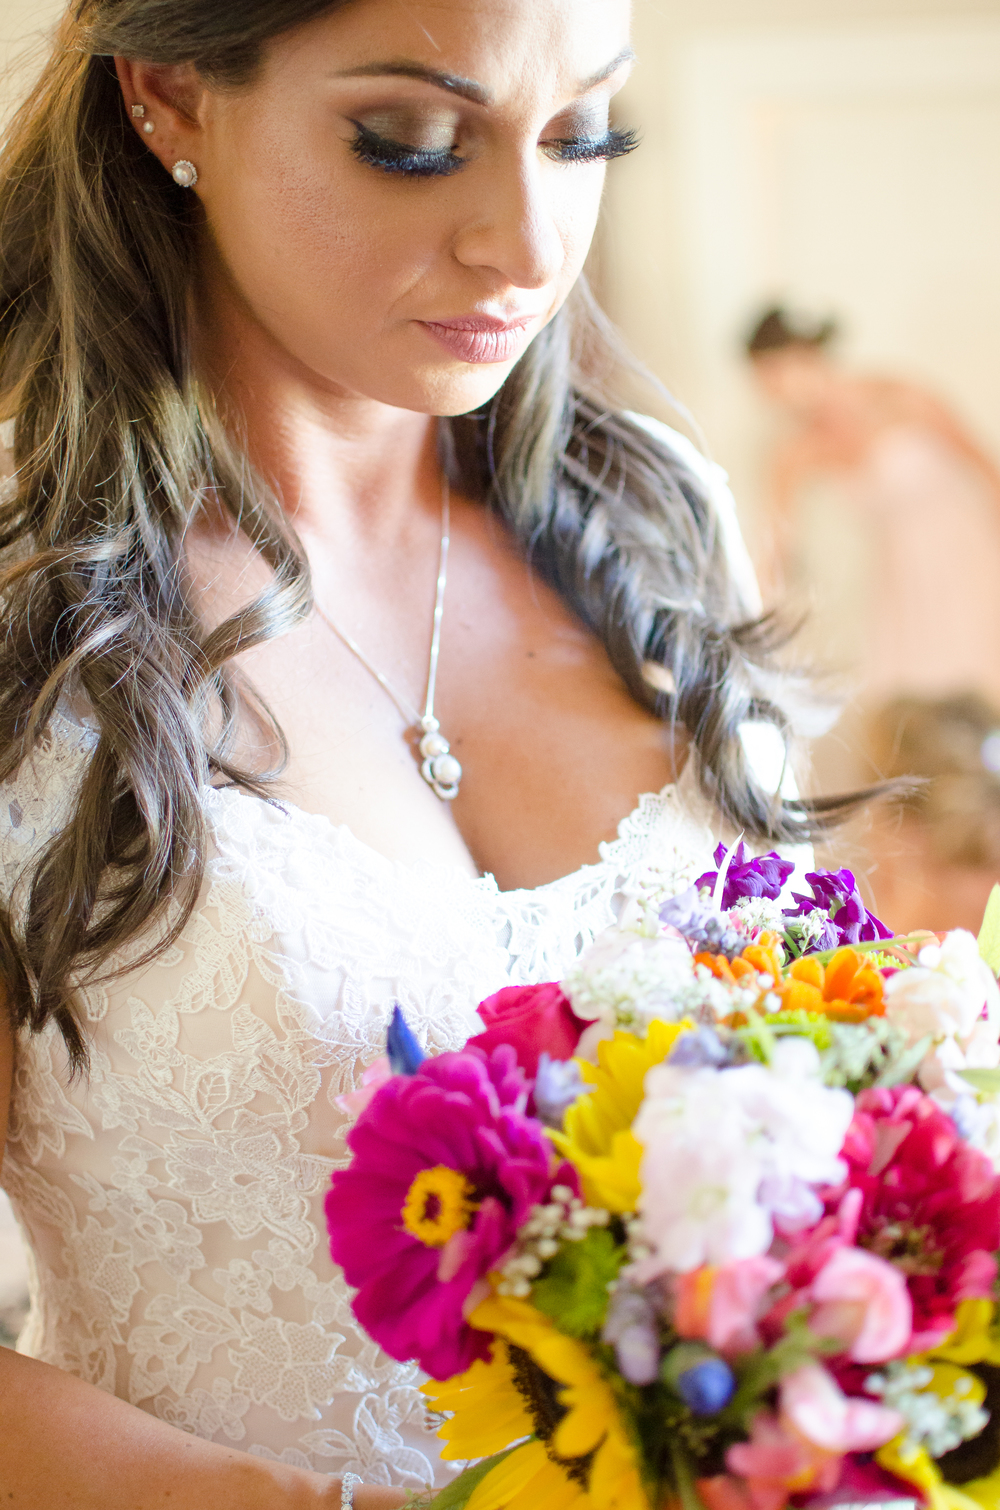 Springfield Manor Winery & Distillery Wedding Bride Photo